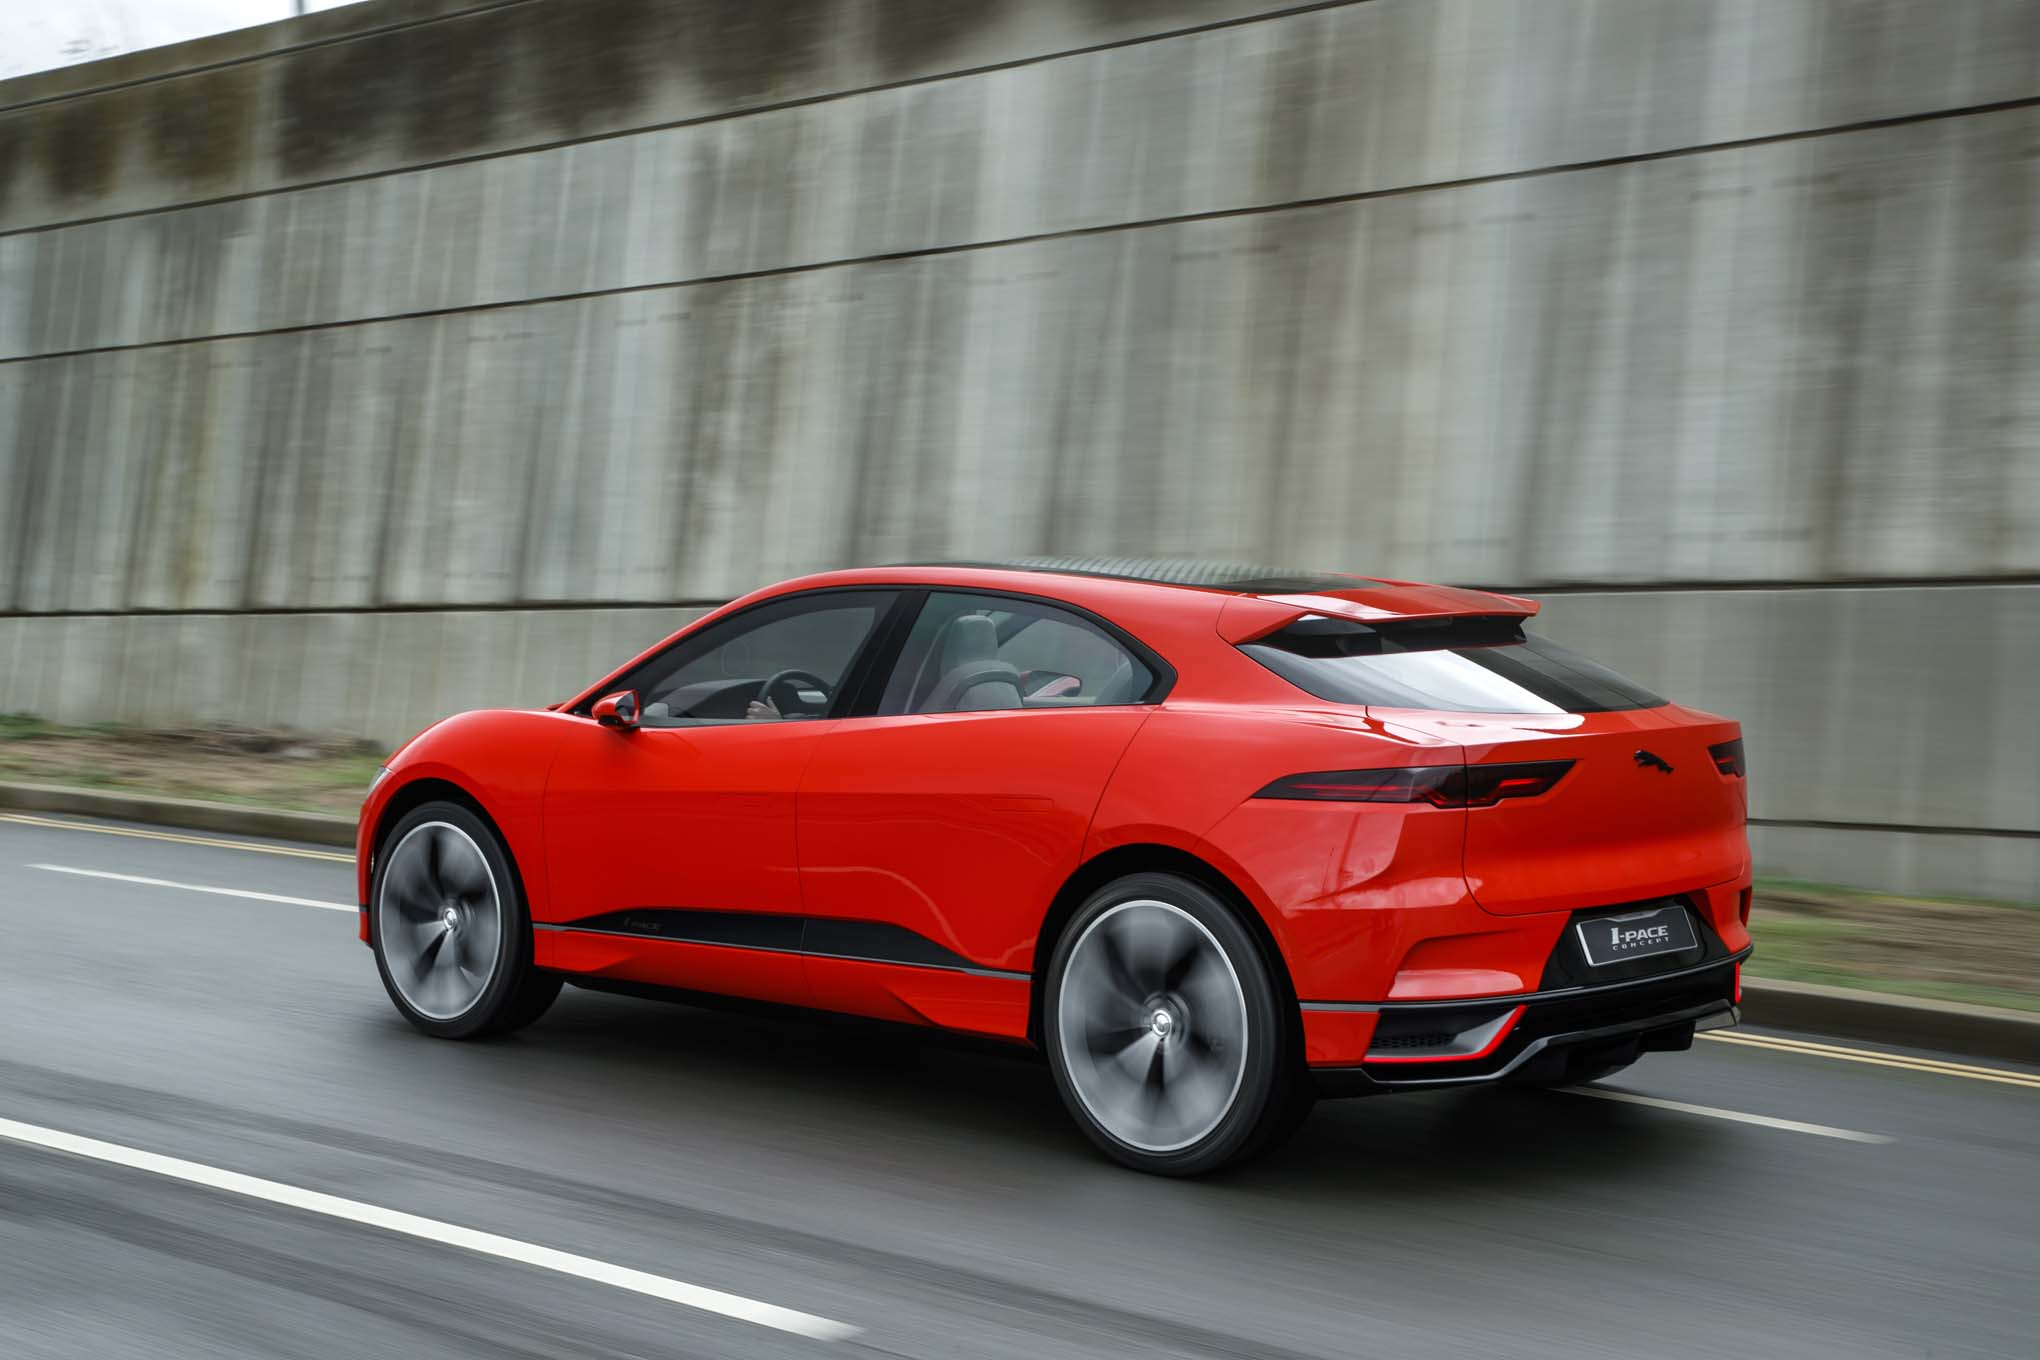 jaguar-i-pace-concept-rear-three-quarter-in-motion-04-182